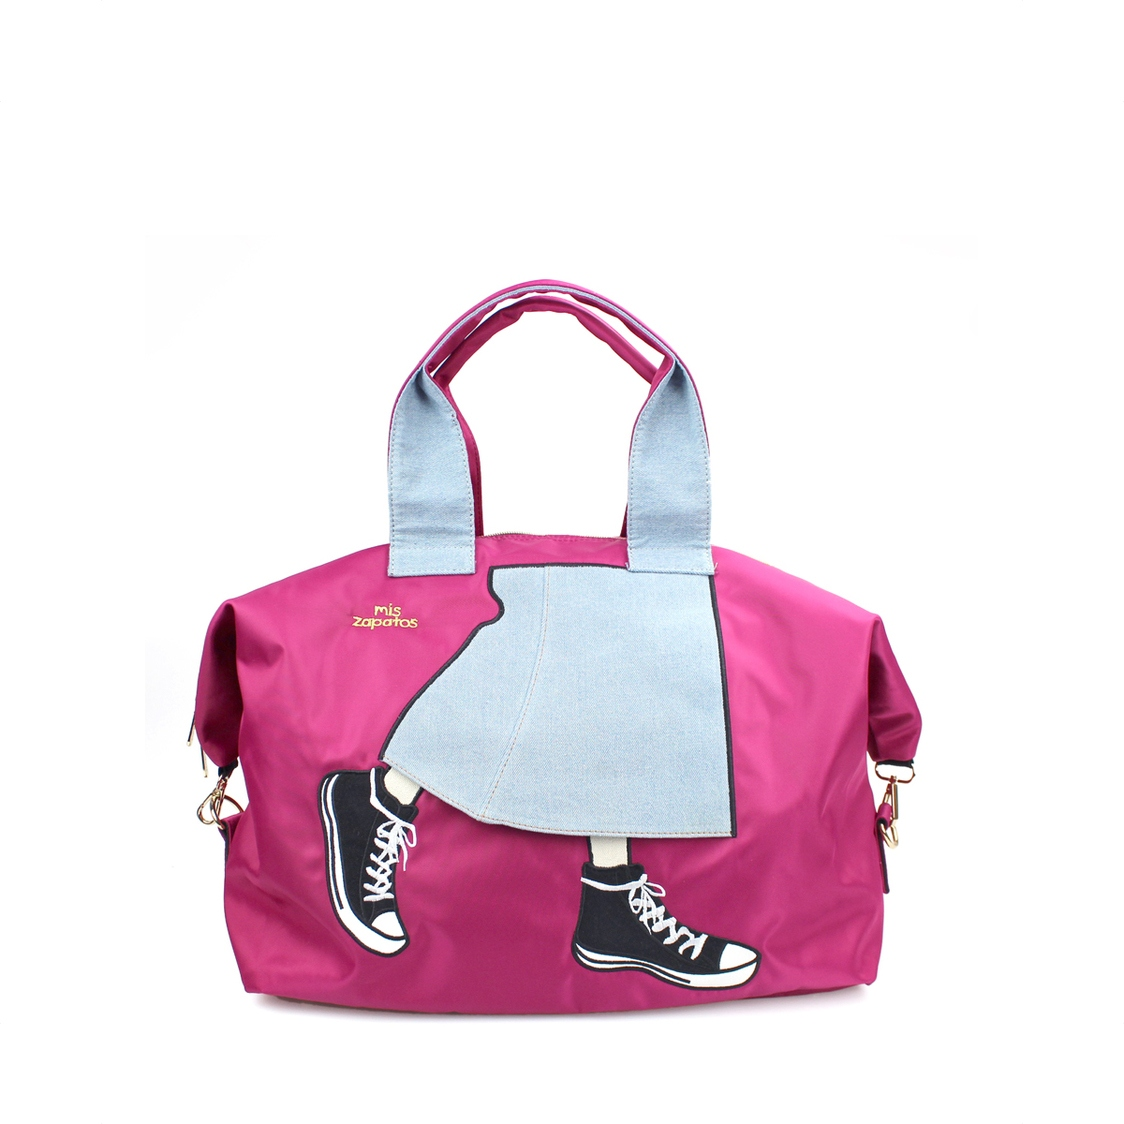 2-Way Use Jeans Skirt With Sneakers Travel Bag Pink